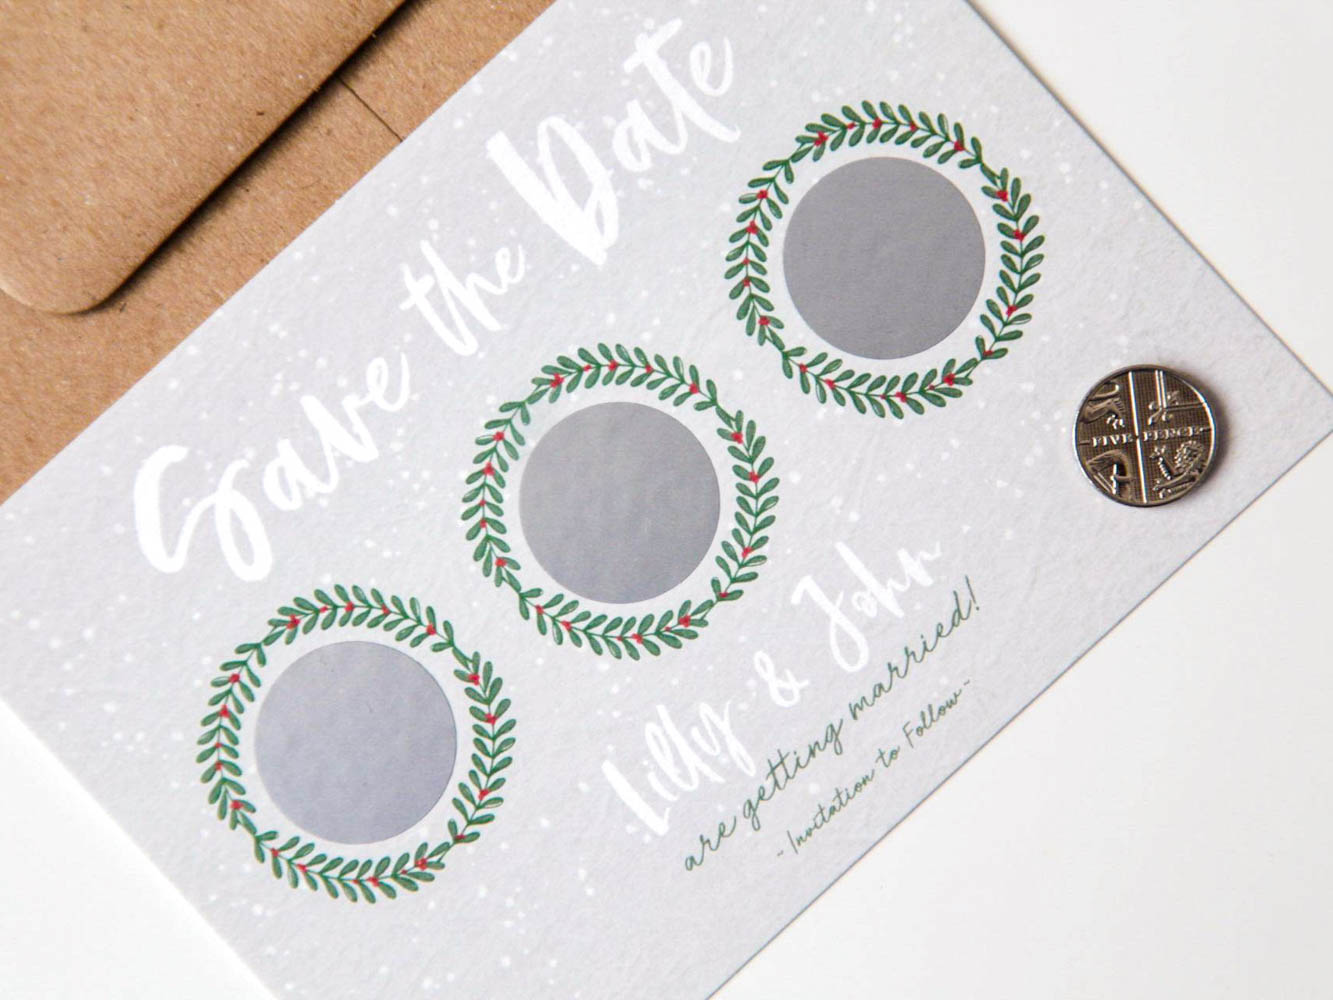 Scratch Off Save the Date Festive Wreath Winter Wedding